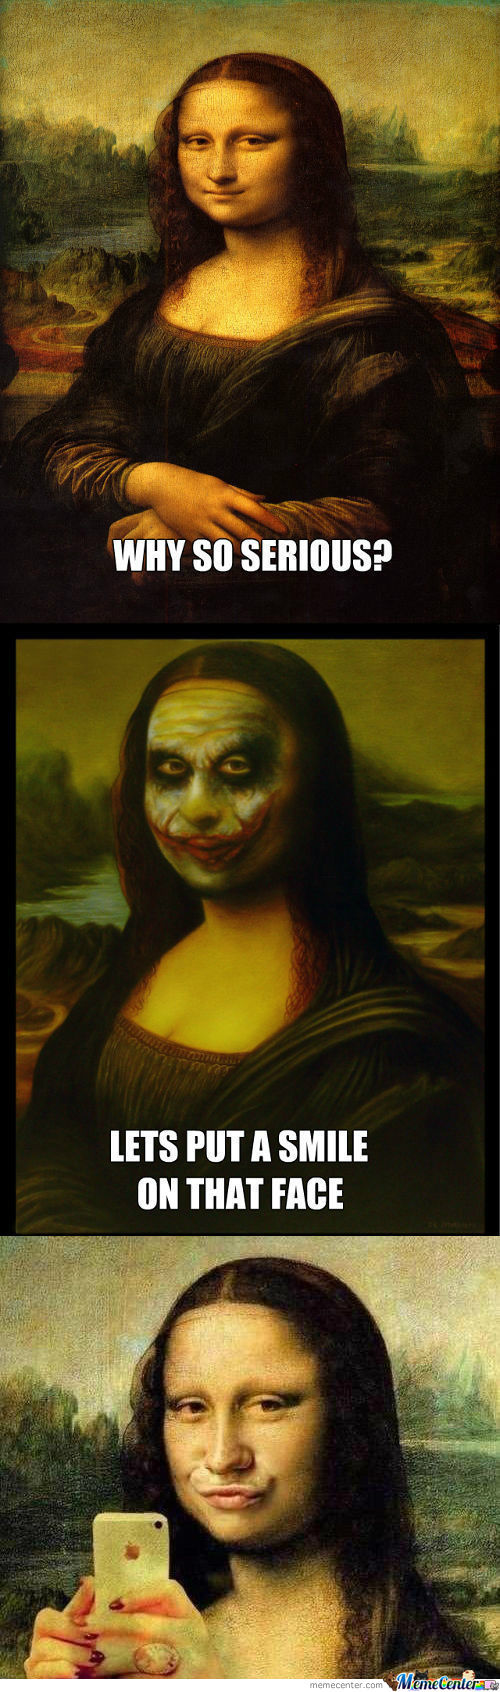 [RMX] Mona Lisa Why So Serious?